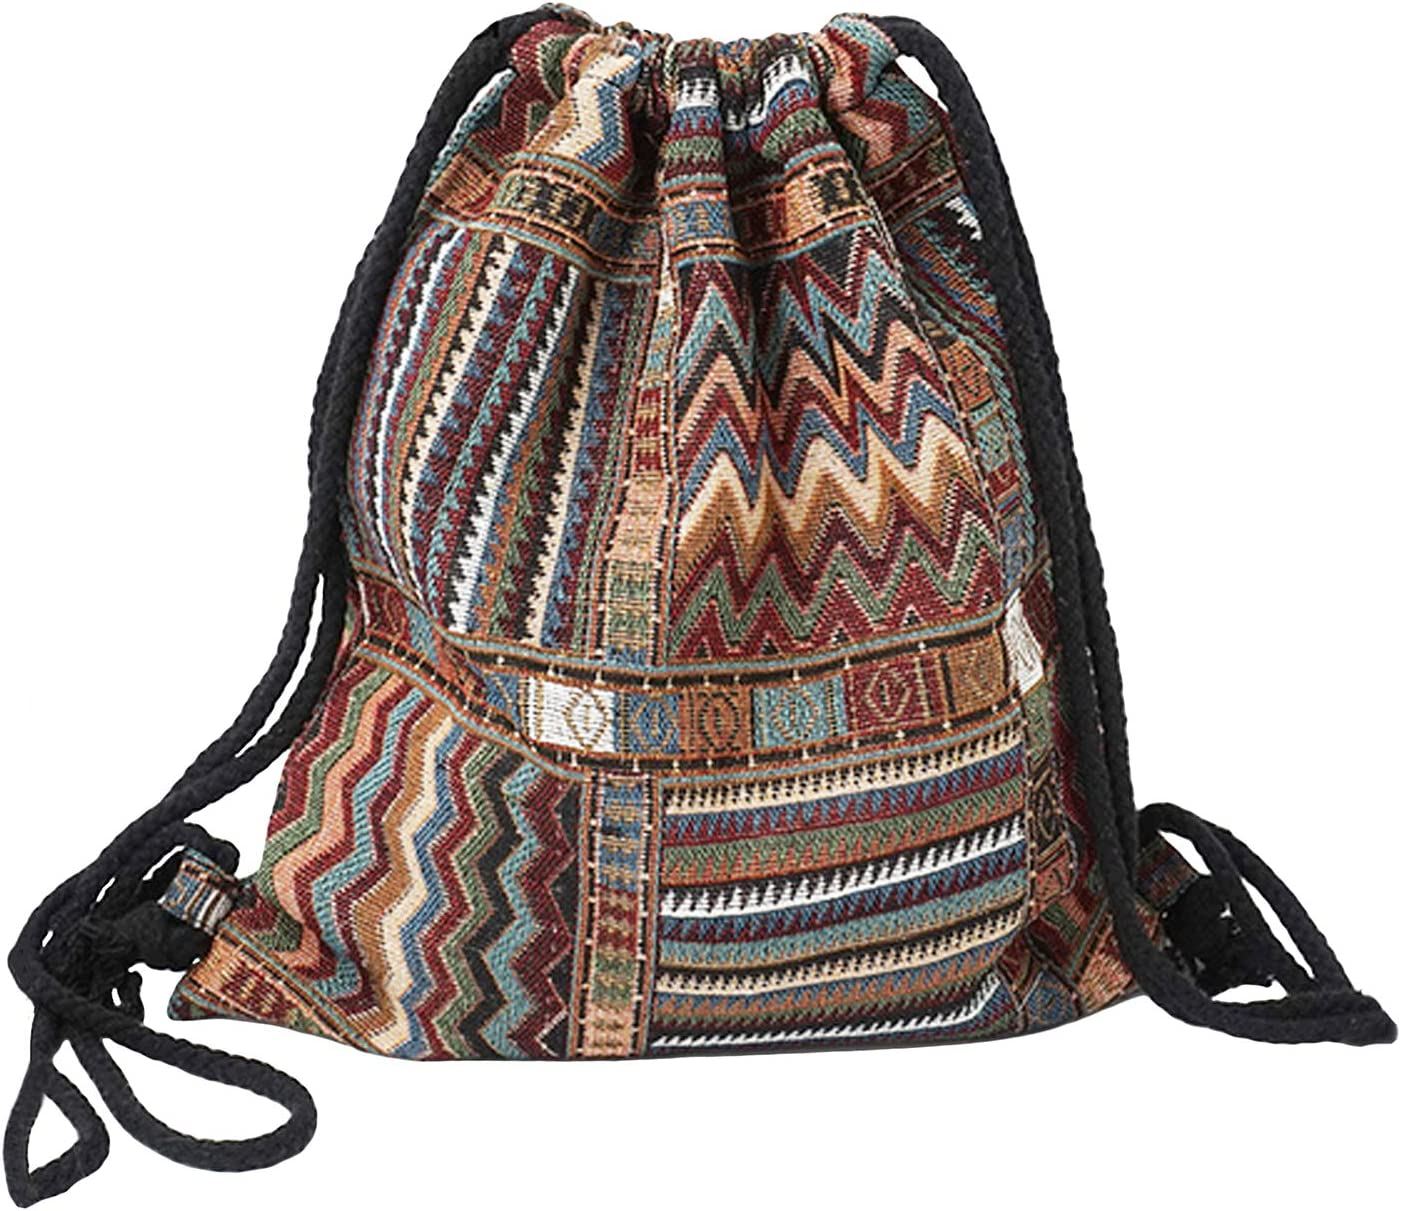 Ochre Floral Cotton Drawstring Backpack